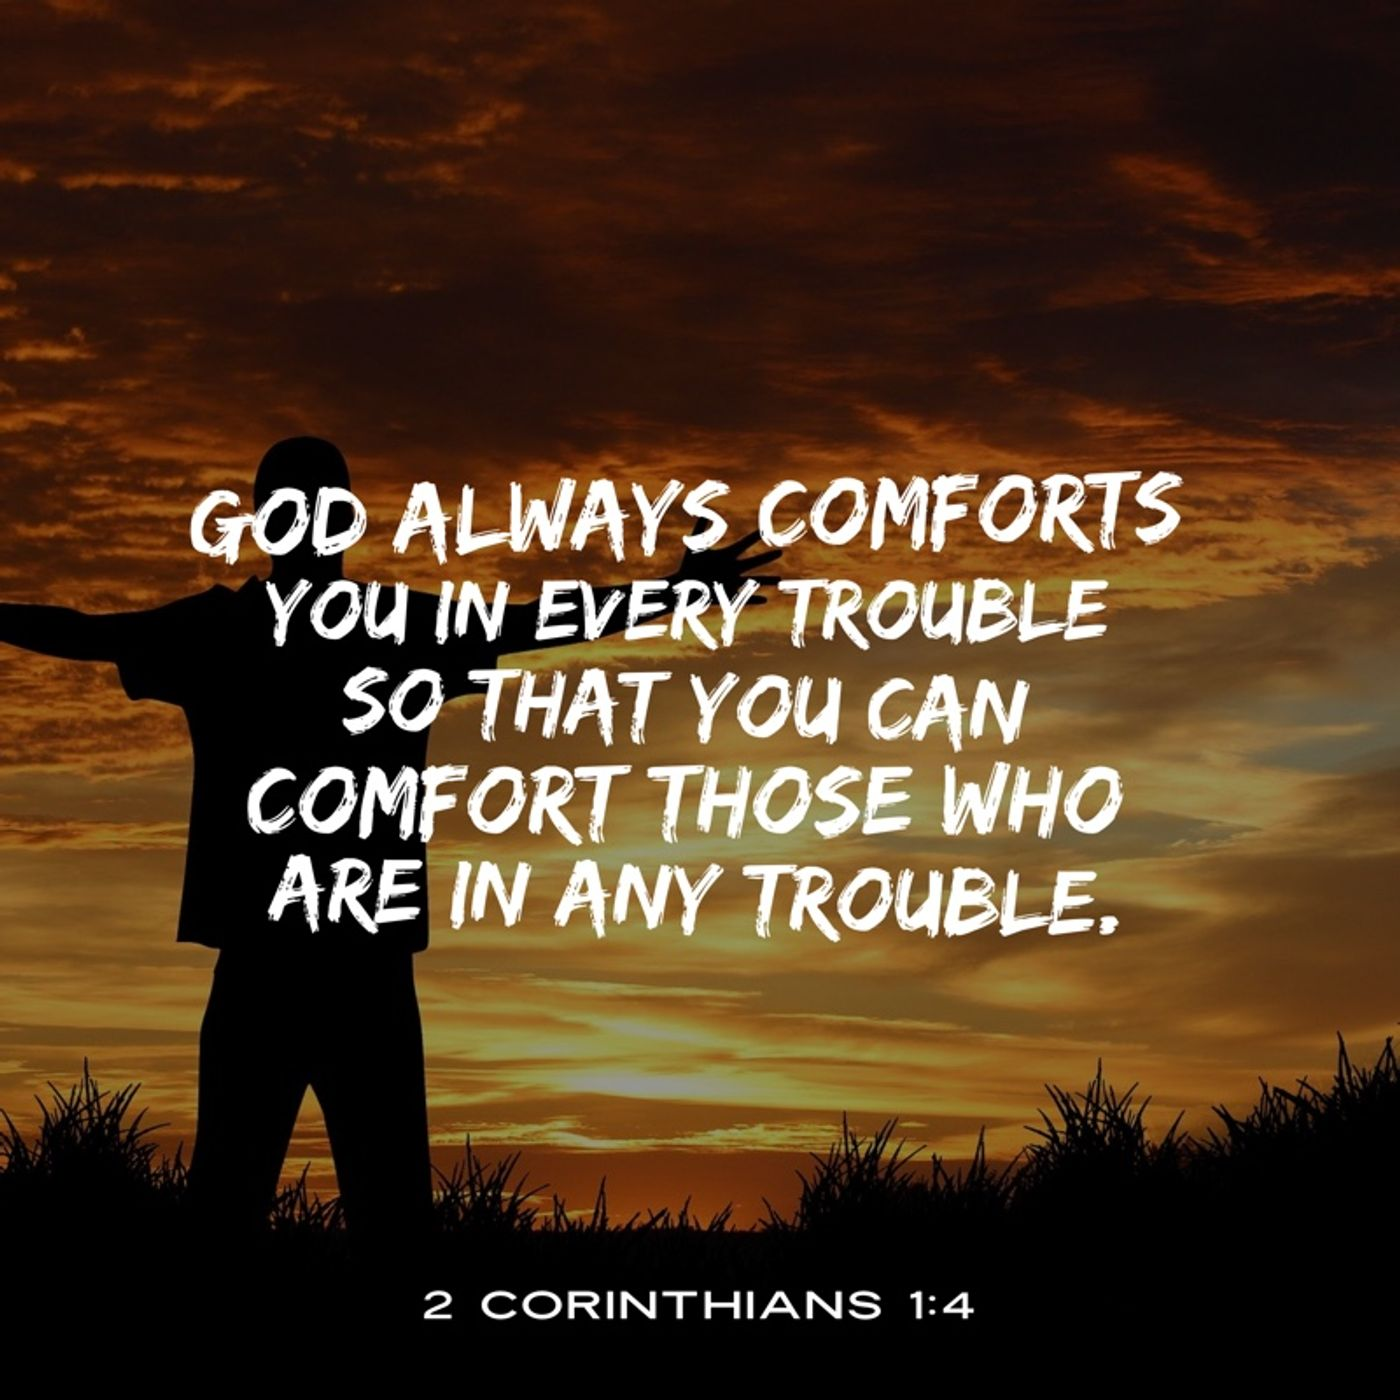 How to Live in God's Loving Comfort in All your Troubles